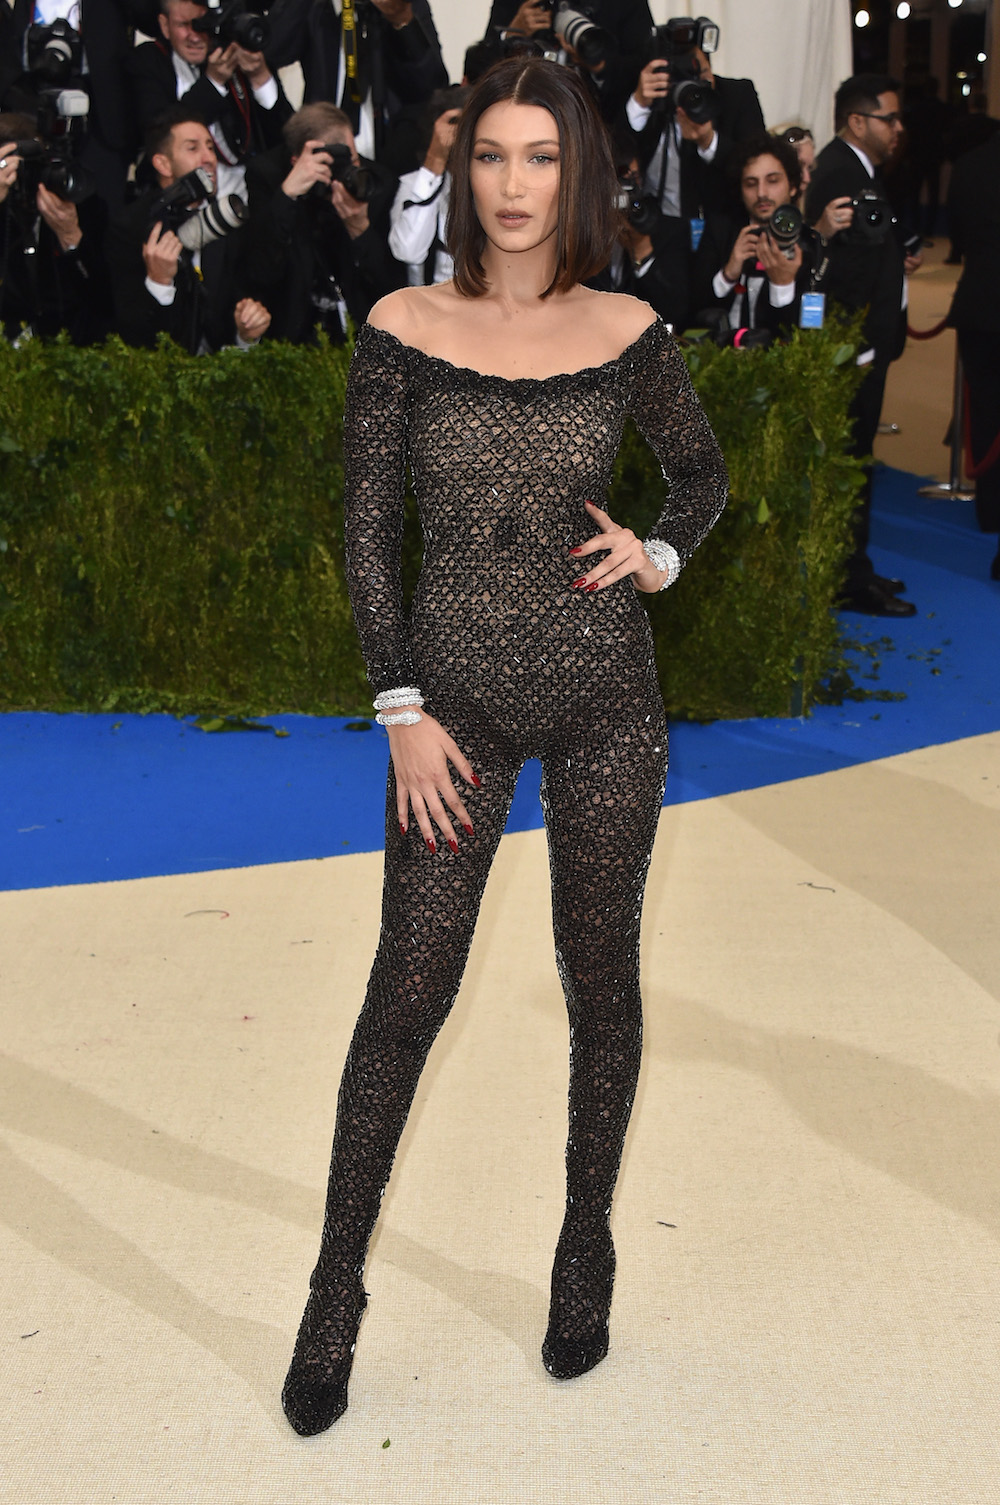 Bella Hadid just wore a gothic nudeillusion onesie to the